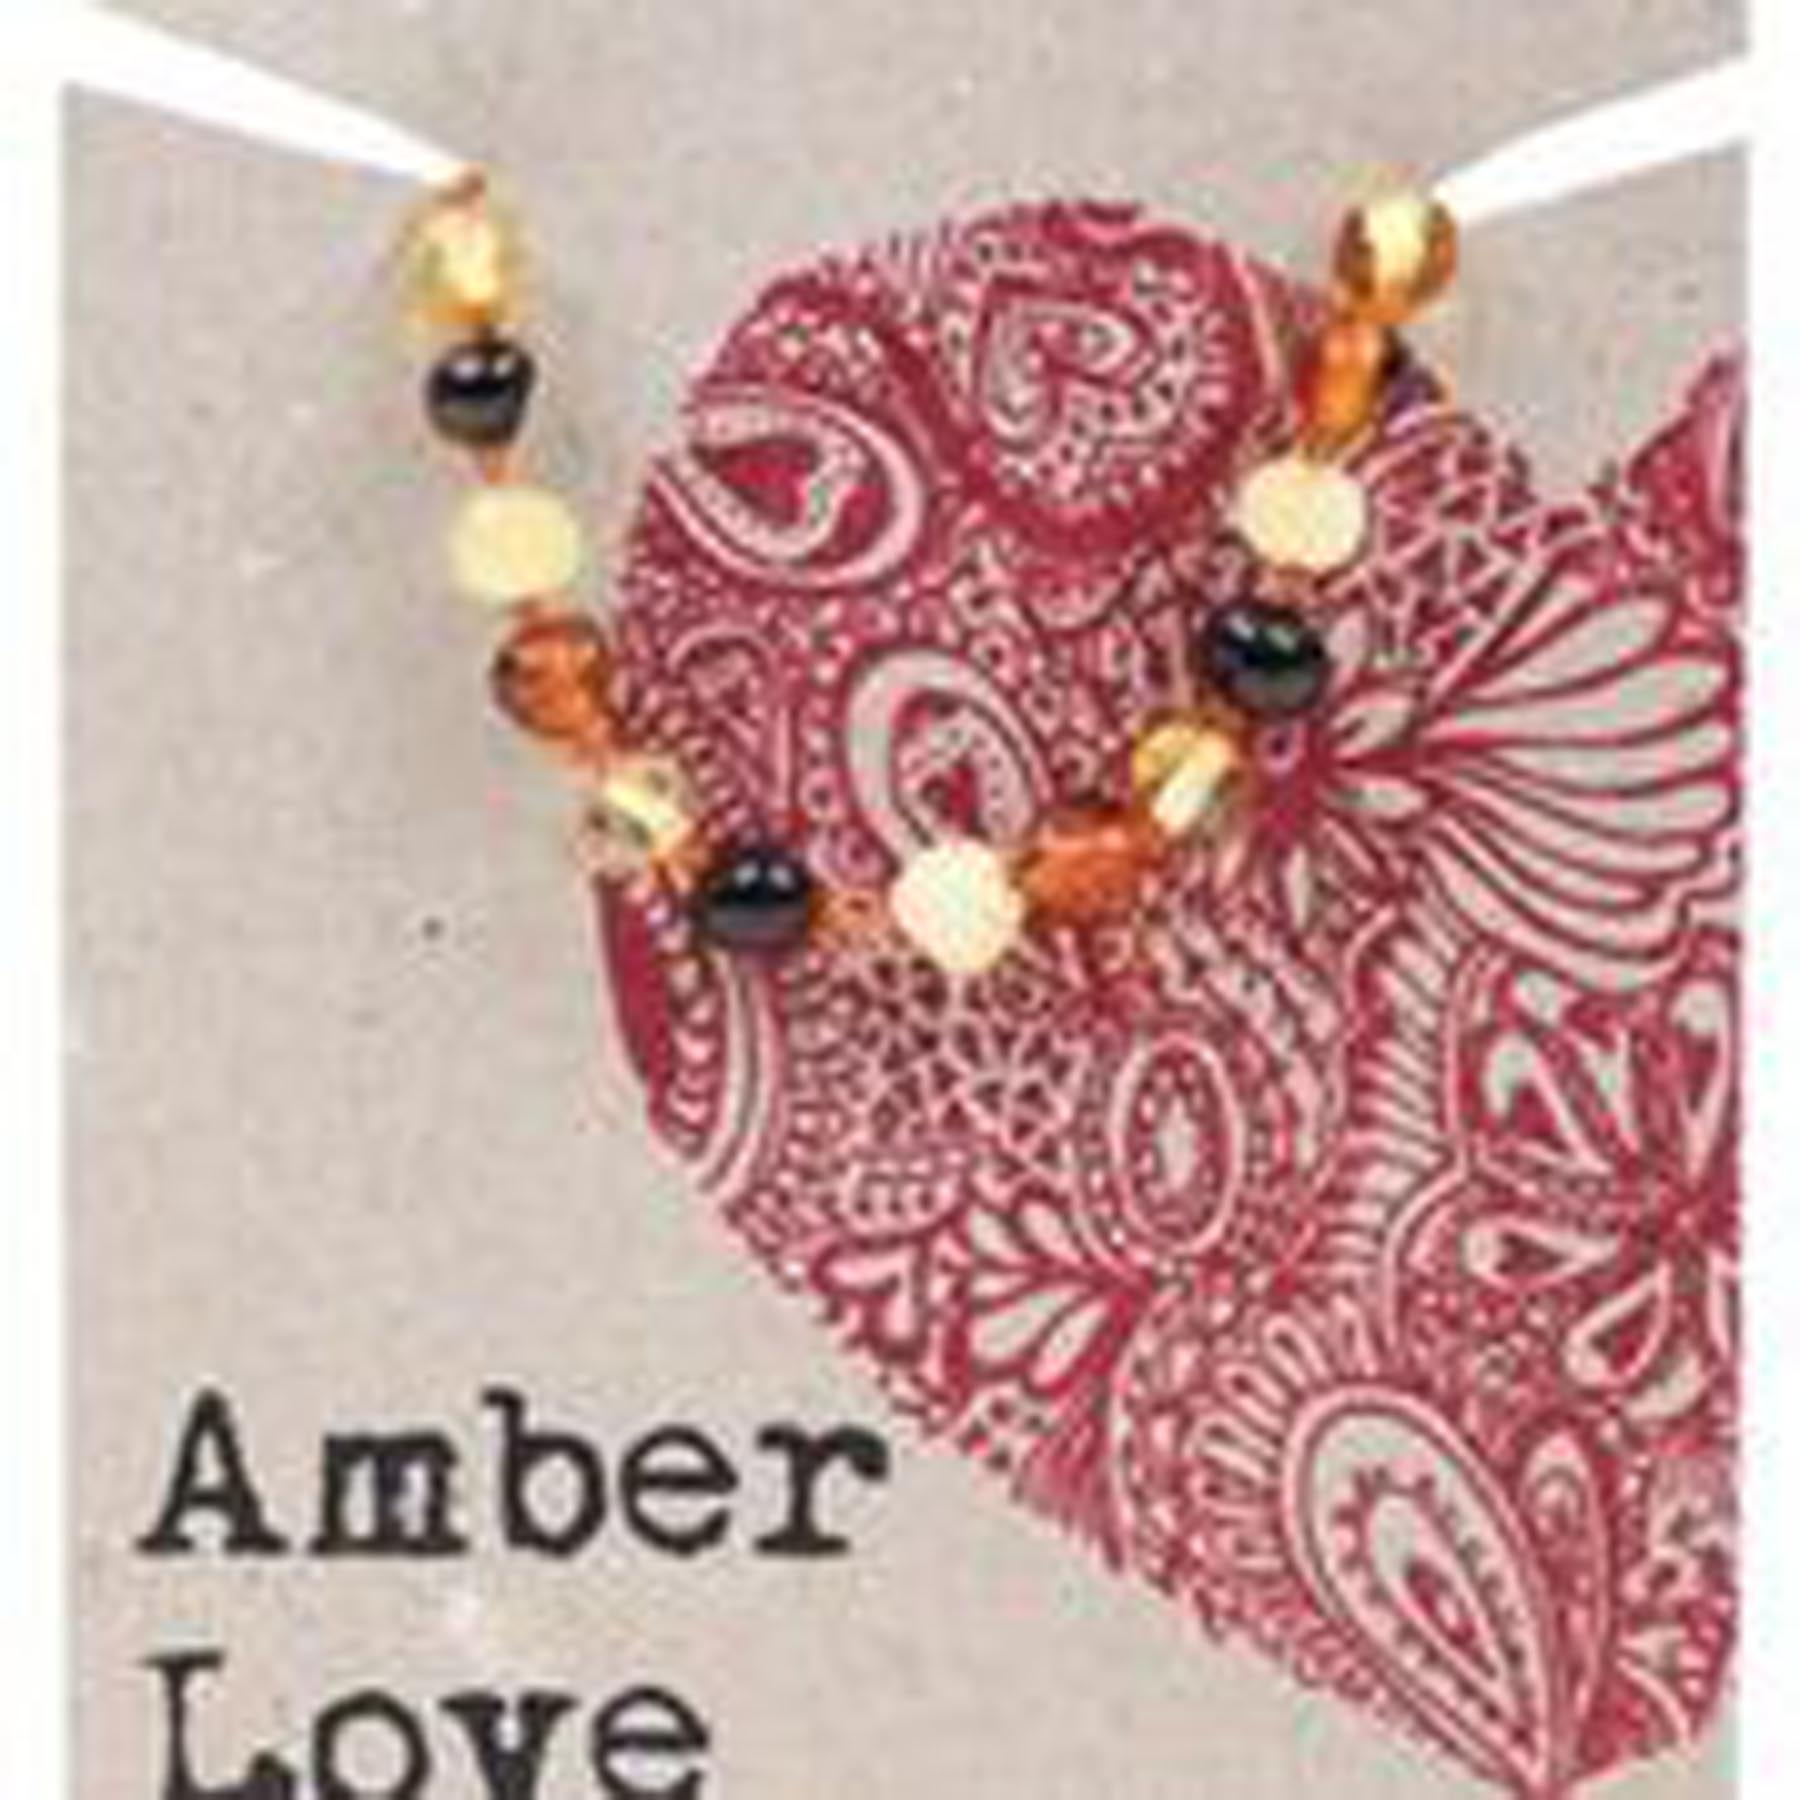 AMBER LOVE CHILD BRACELET / ANKLET MIXED LOVE www.motherbynature.com.au